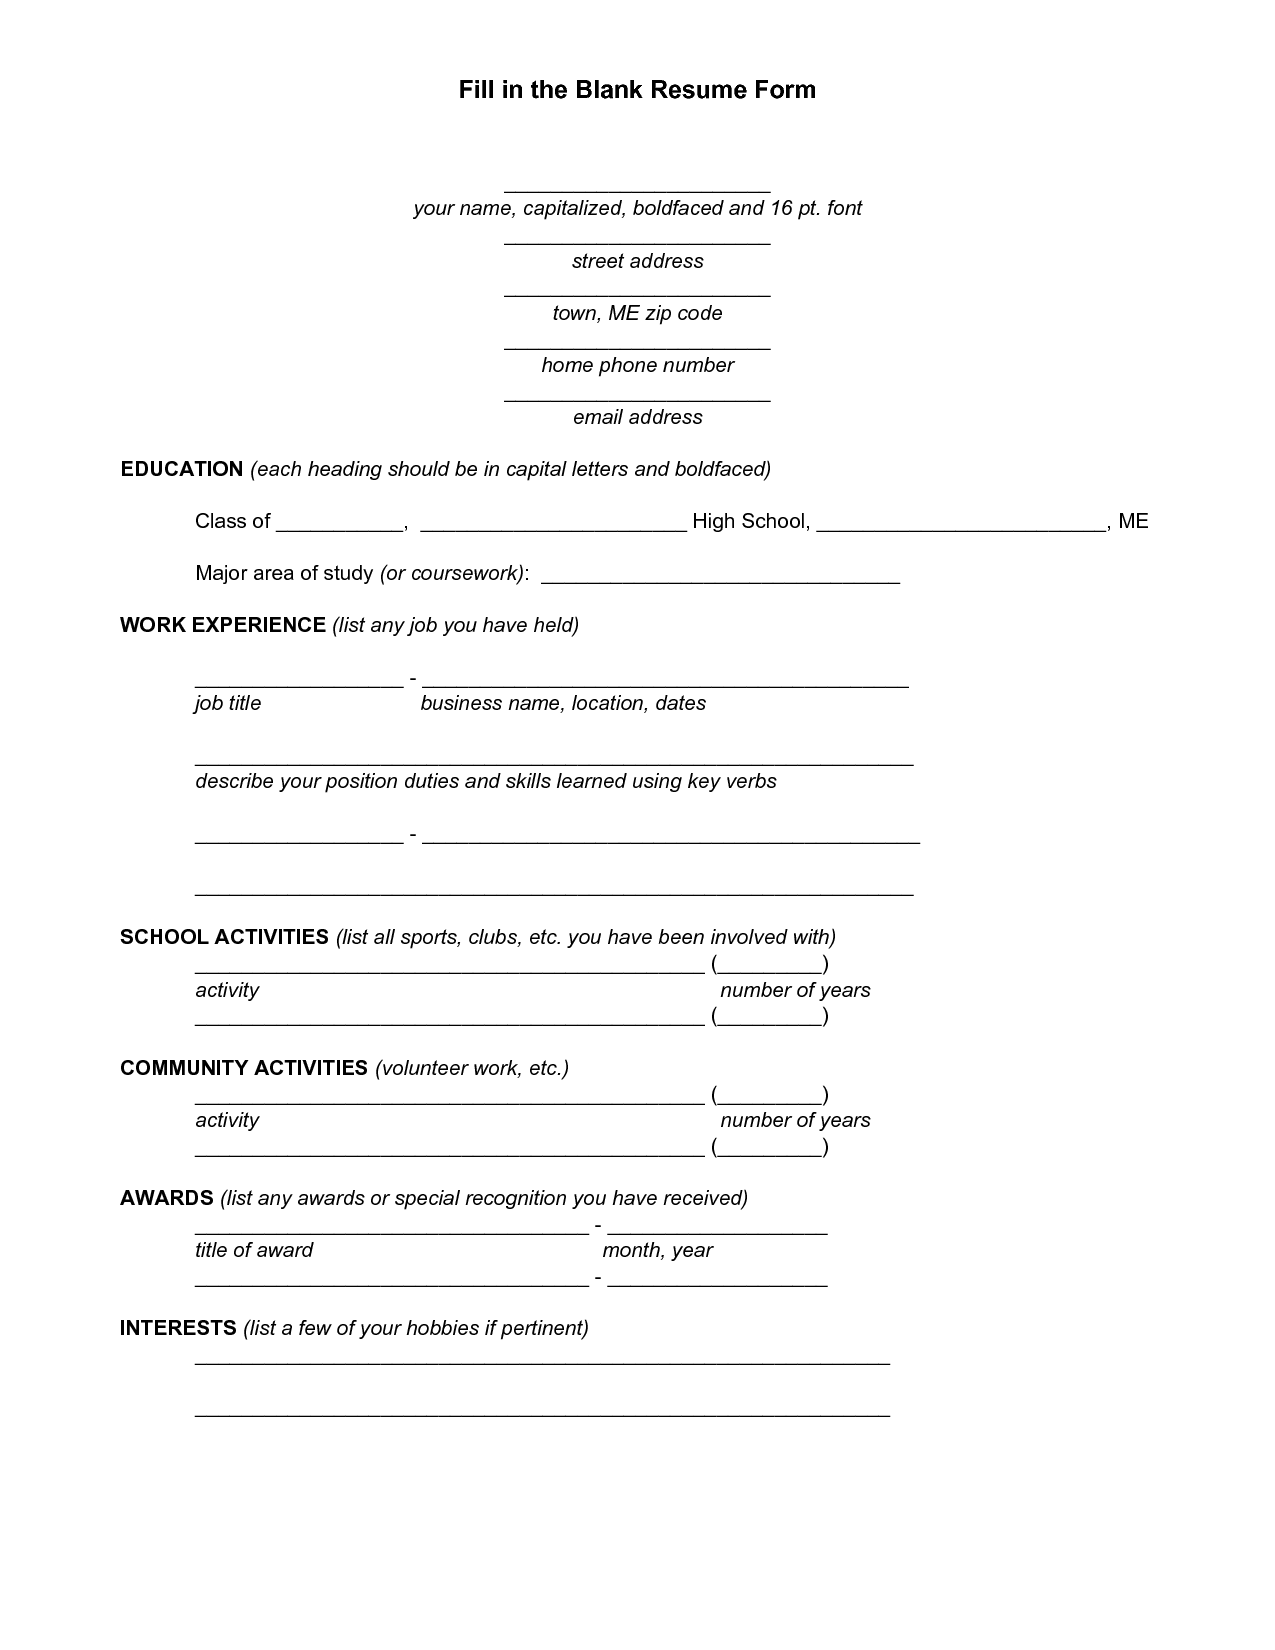 Blank Resume Template For High School Students  httpwwwresumecareerinfoblankresume